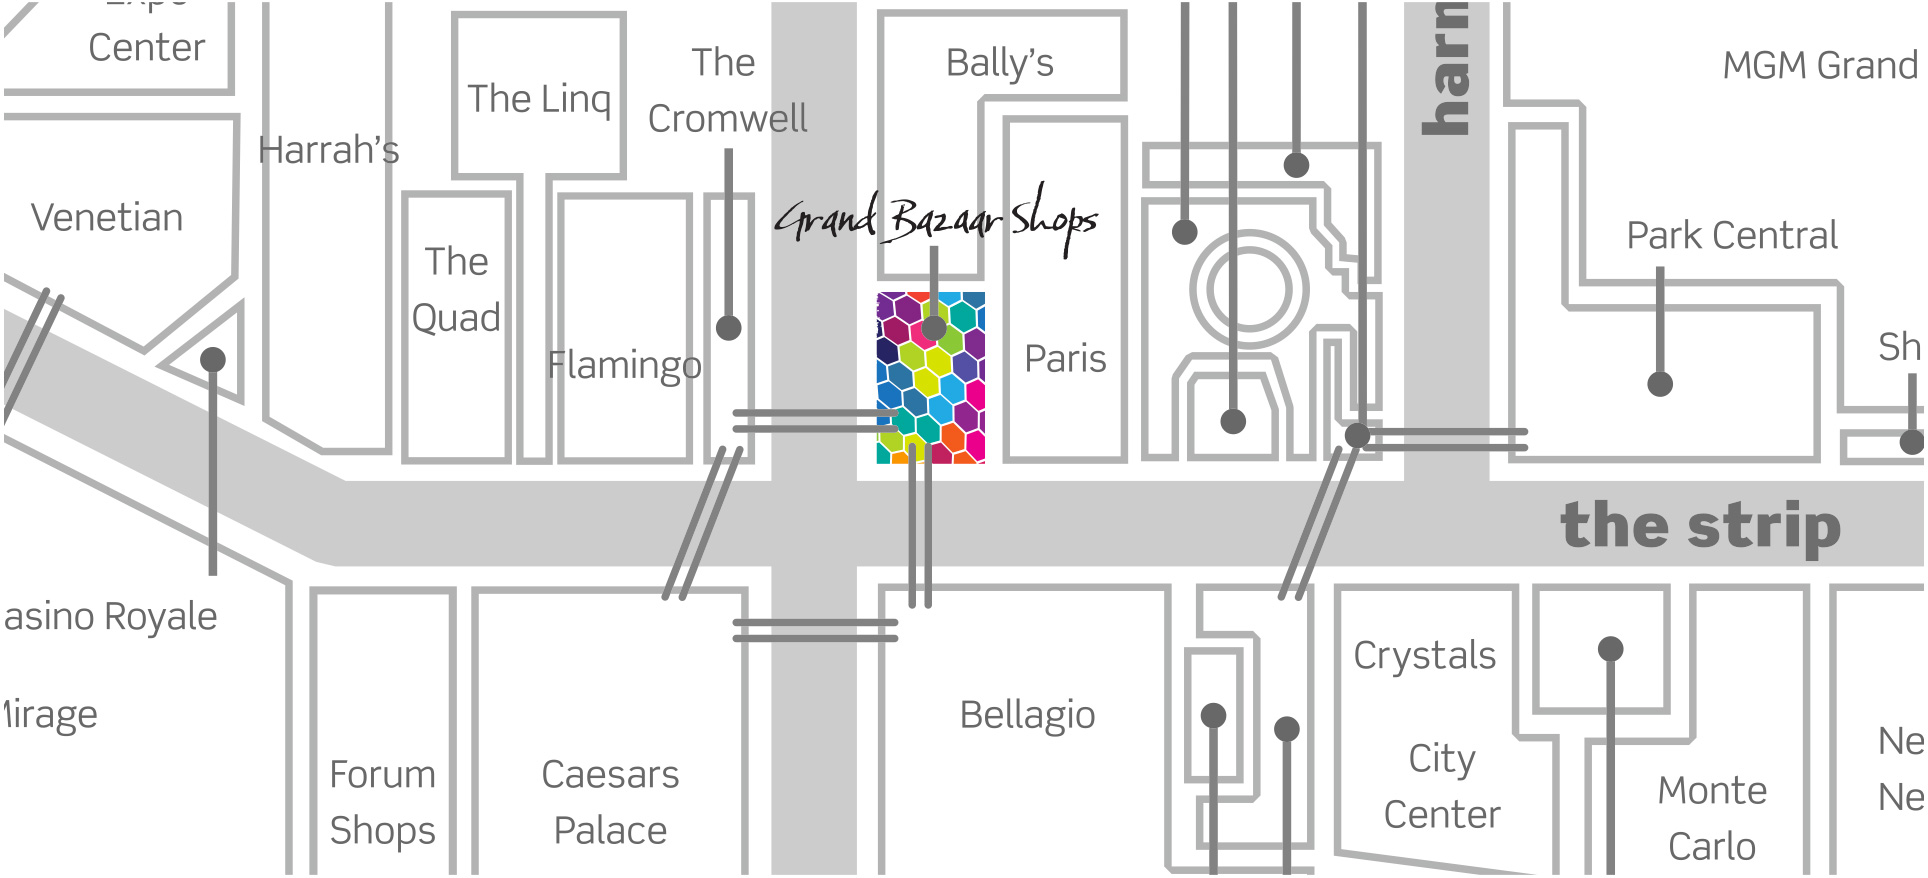 grand-bazaar-shops-las-vegas-strip-map-zoomed